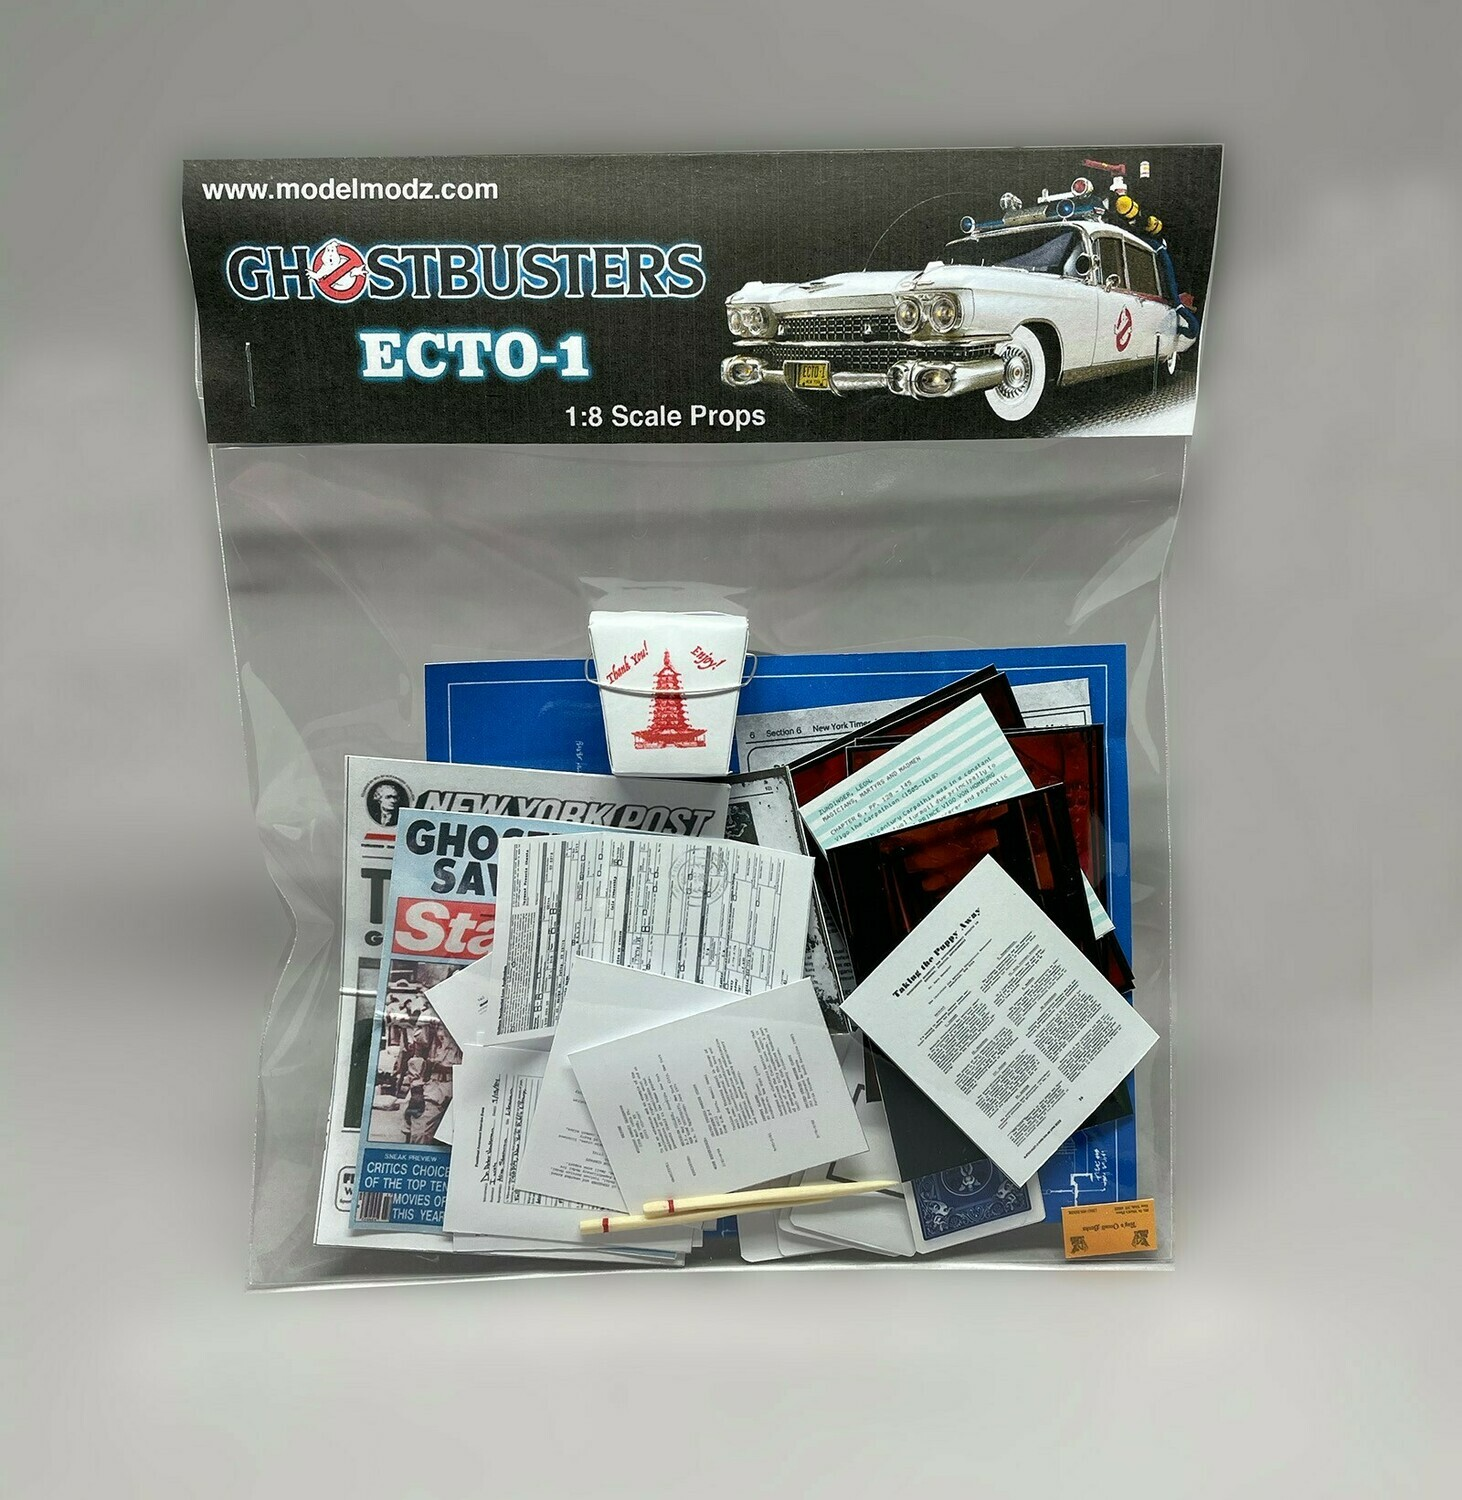 Ghostbusters 1:8 Scale Ecto-1 Miniature Paper Props (pack 2)